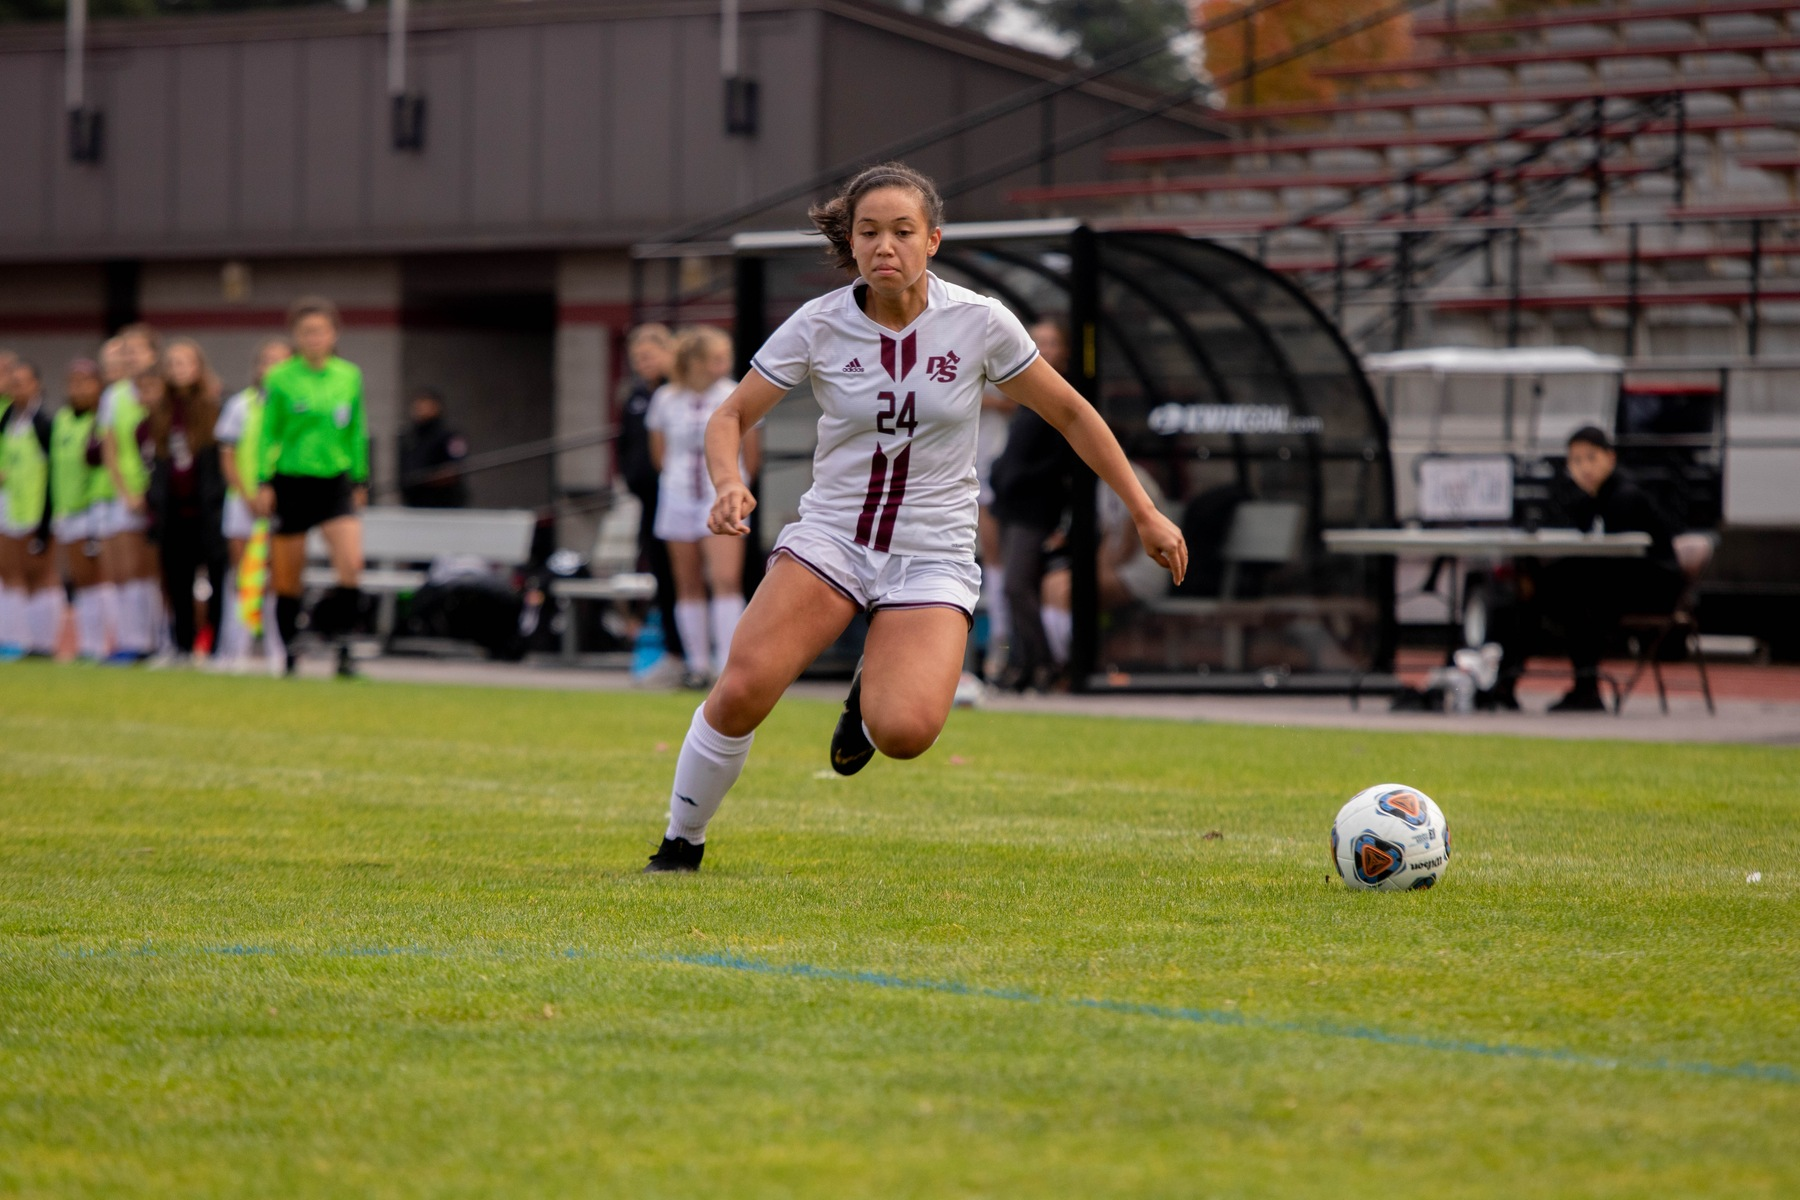 Loggers score three first-half goals in 4-0 win at Whitman